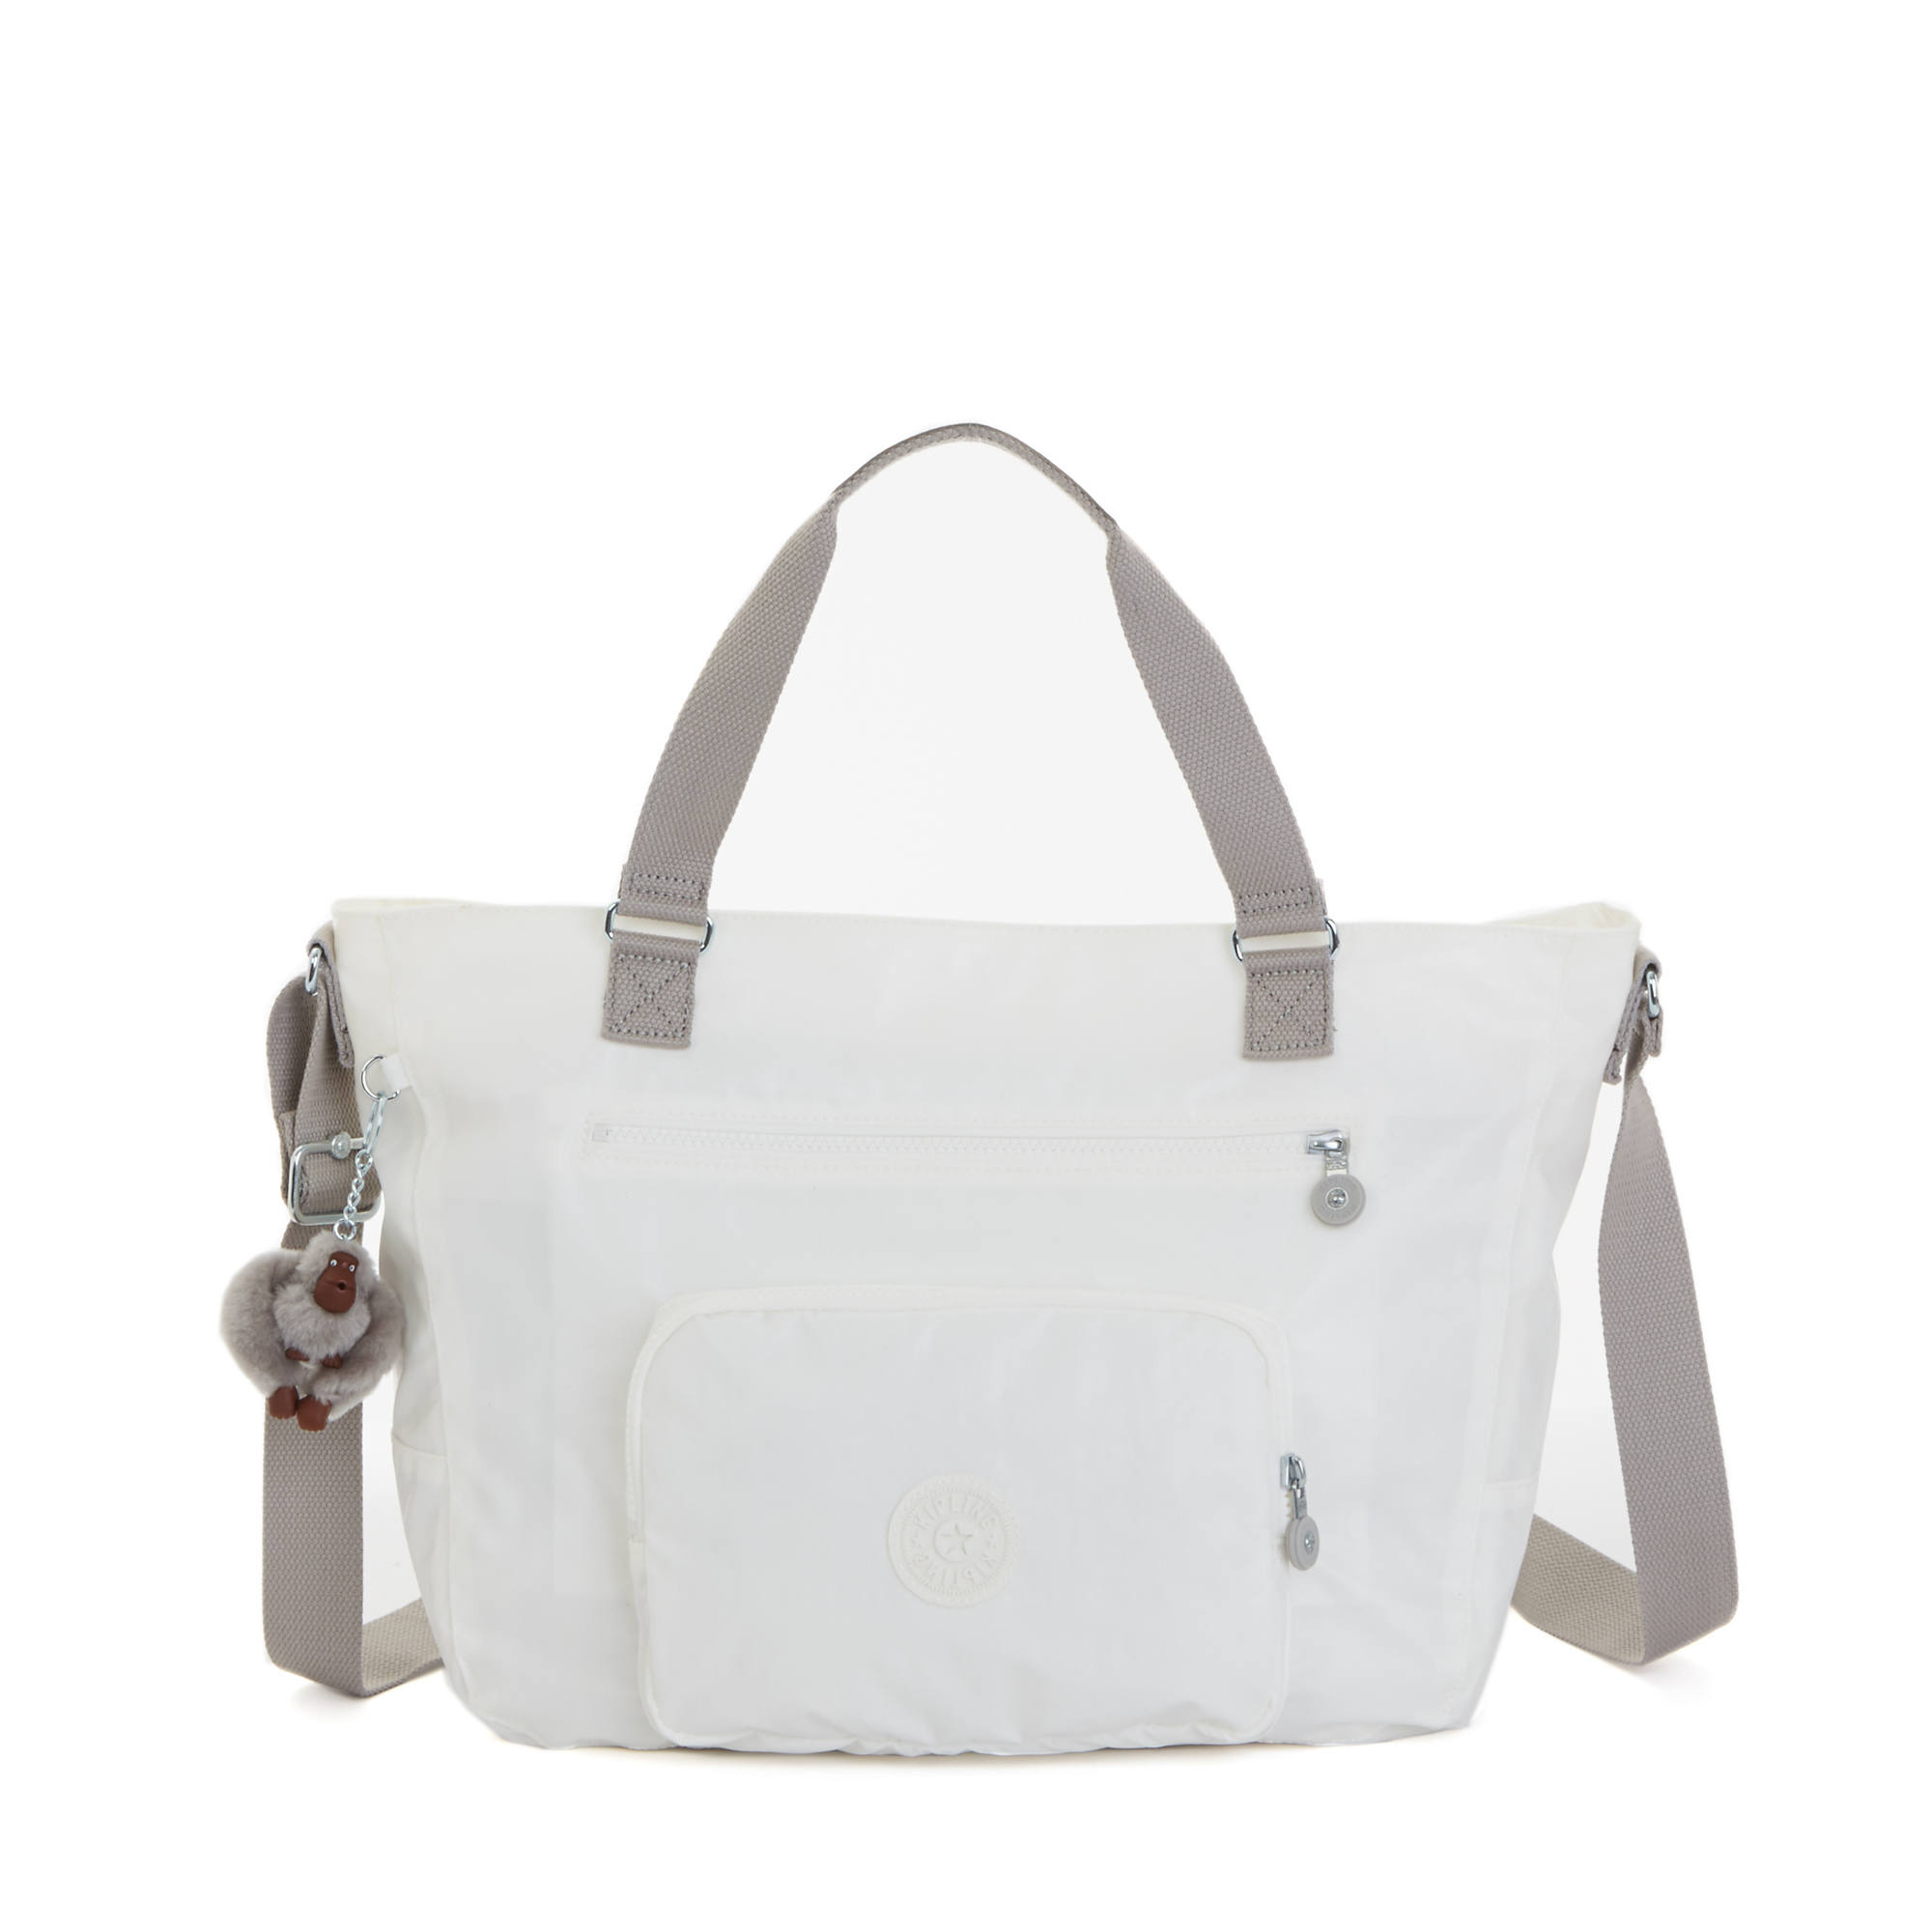 25be8bc69 Maxwell Tote Bag,Lacquer Pearl,large